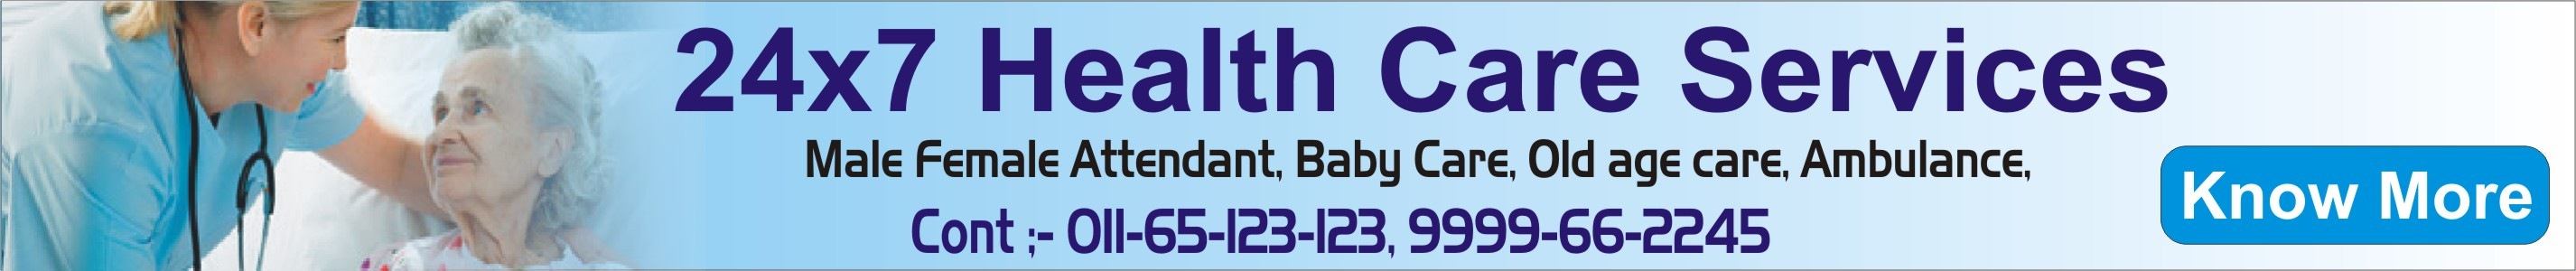 24x7 health care services